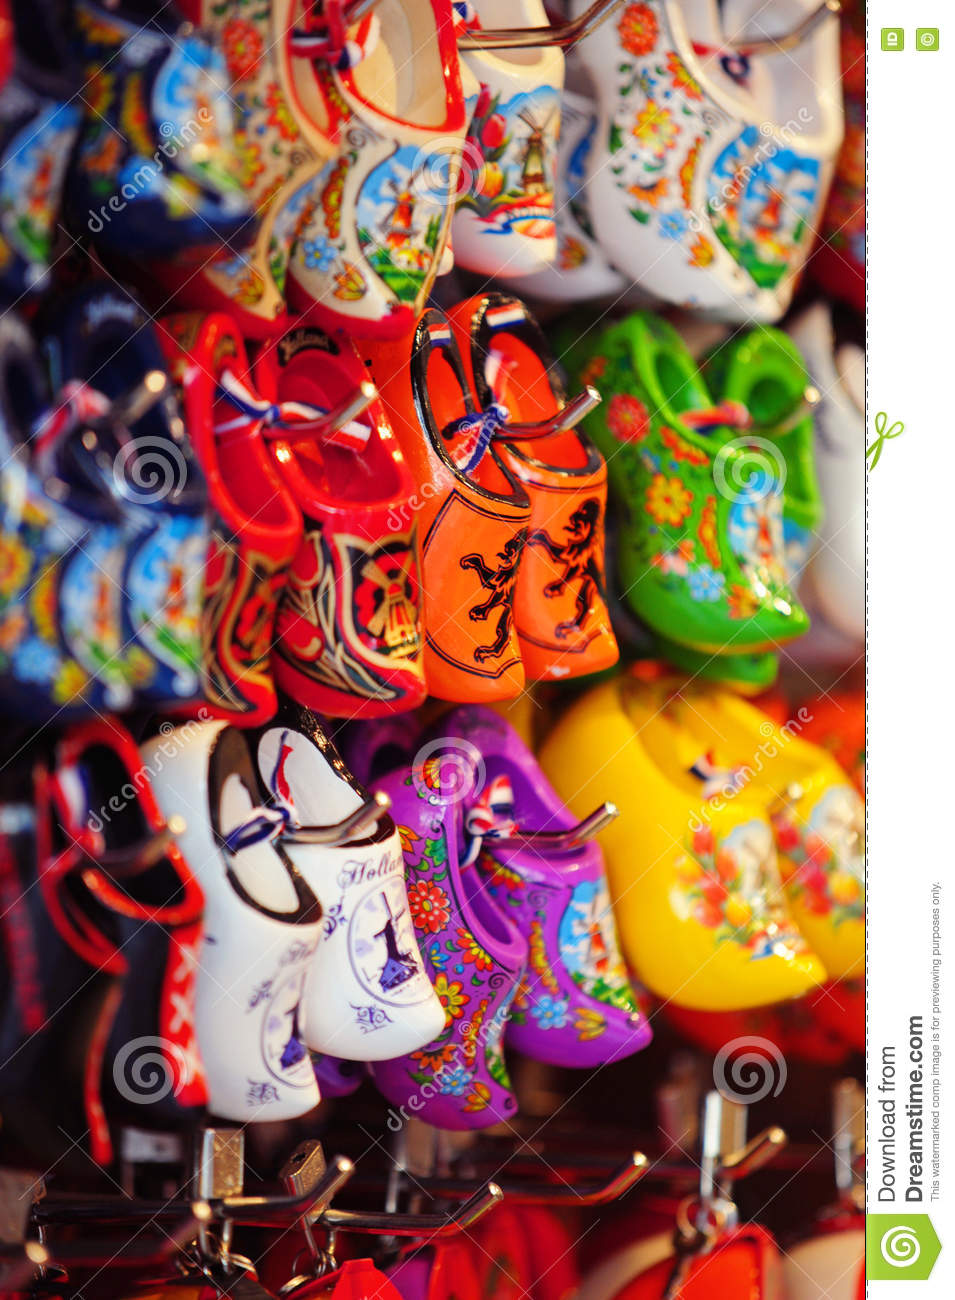 souvenir shop display with colorful dutch wooden shoes stock photo